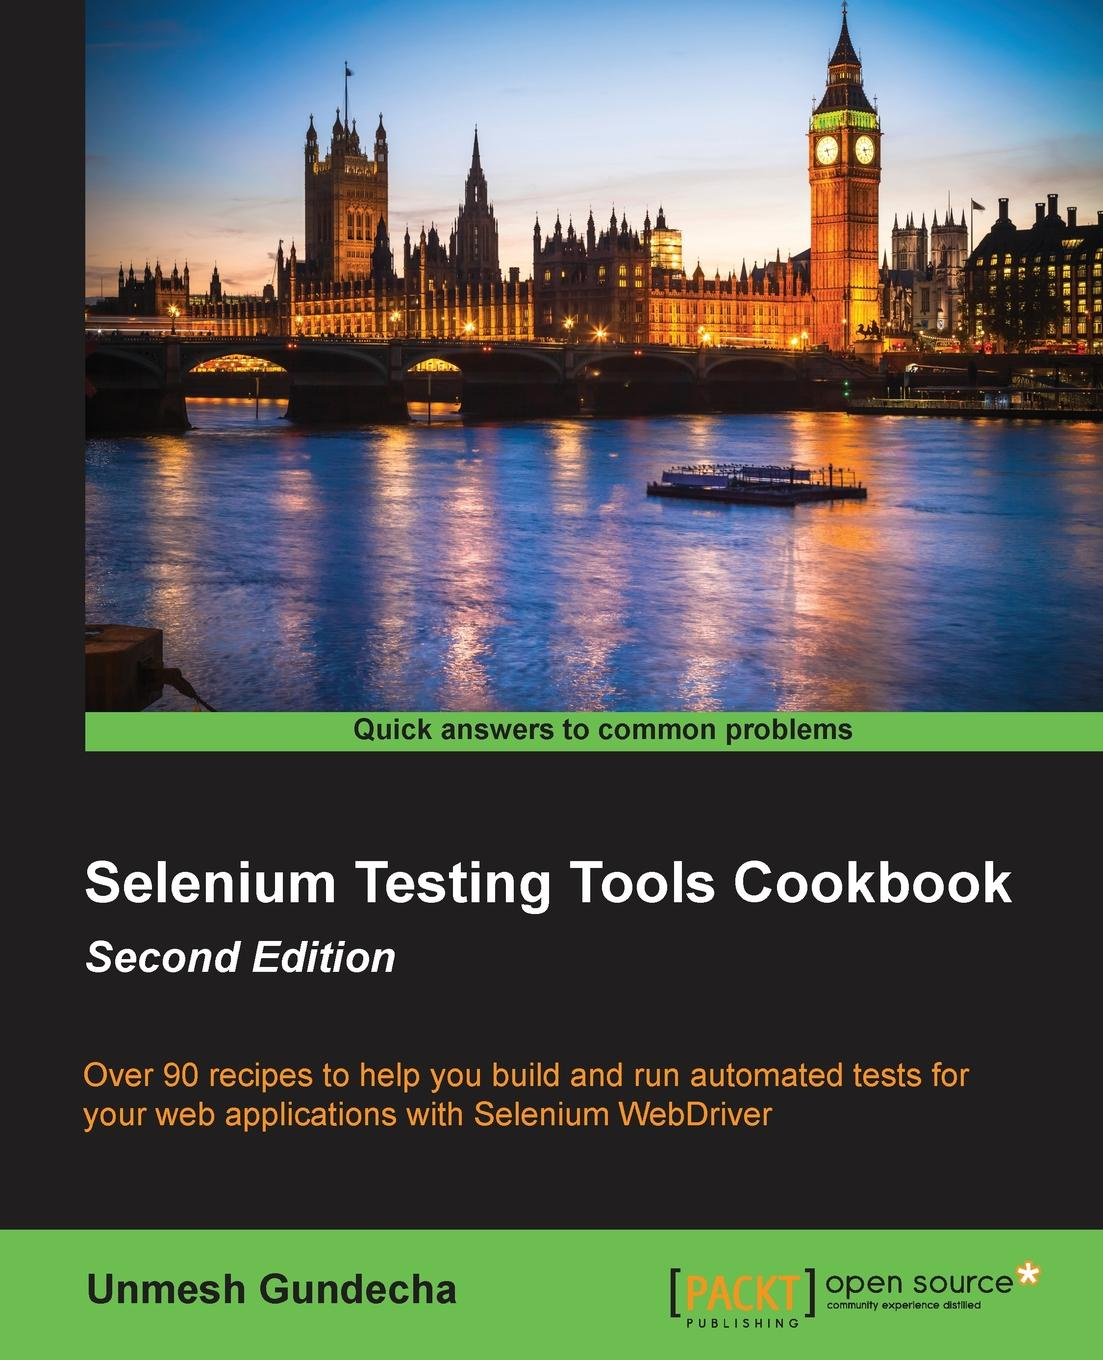 Unmesh Gundecha Selenium Testing Tools Cookbook Second Edition selenium webdriver实战宝典